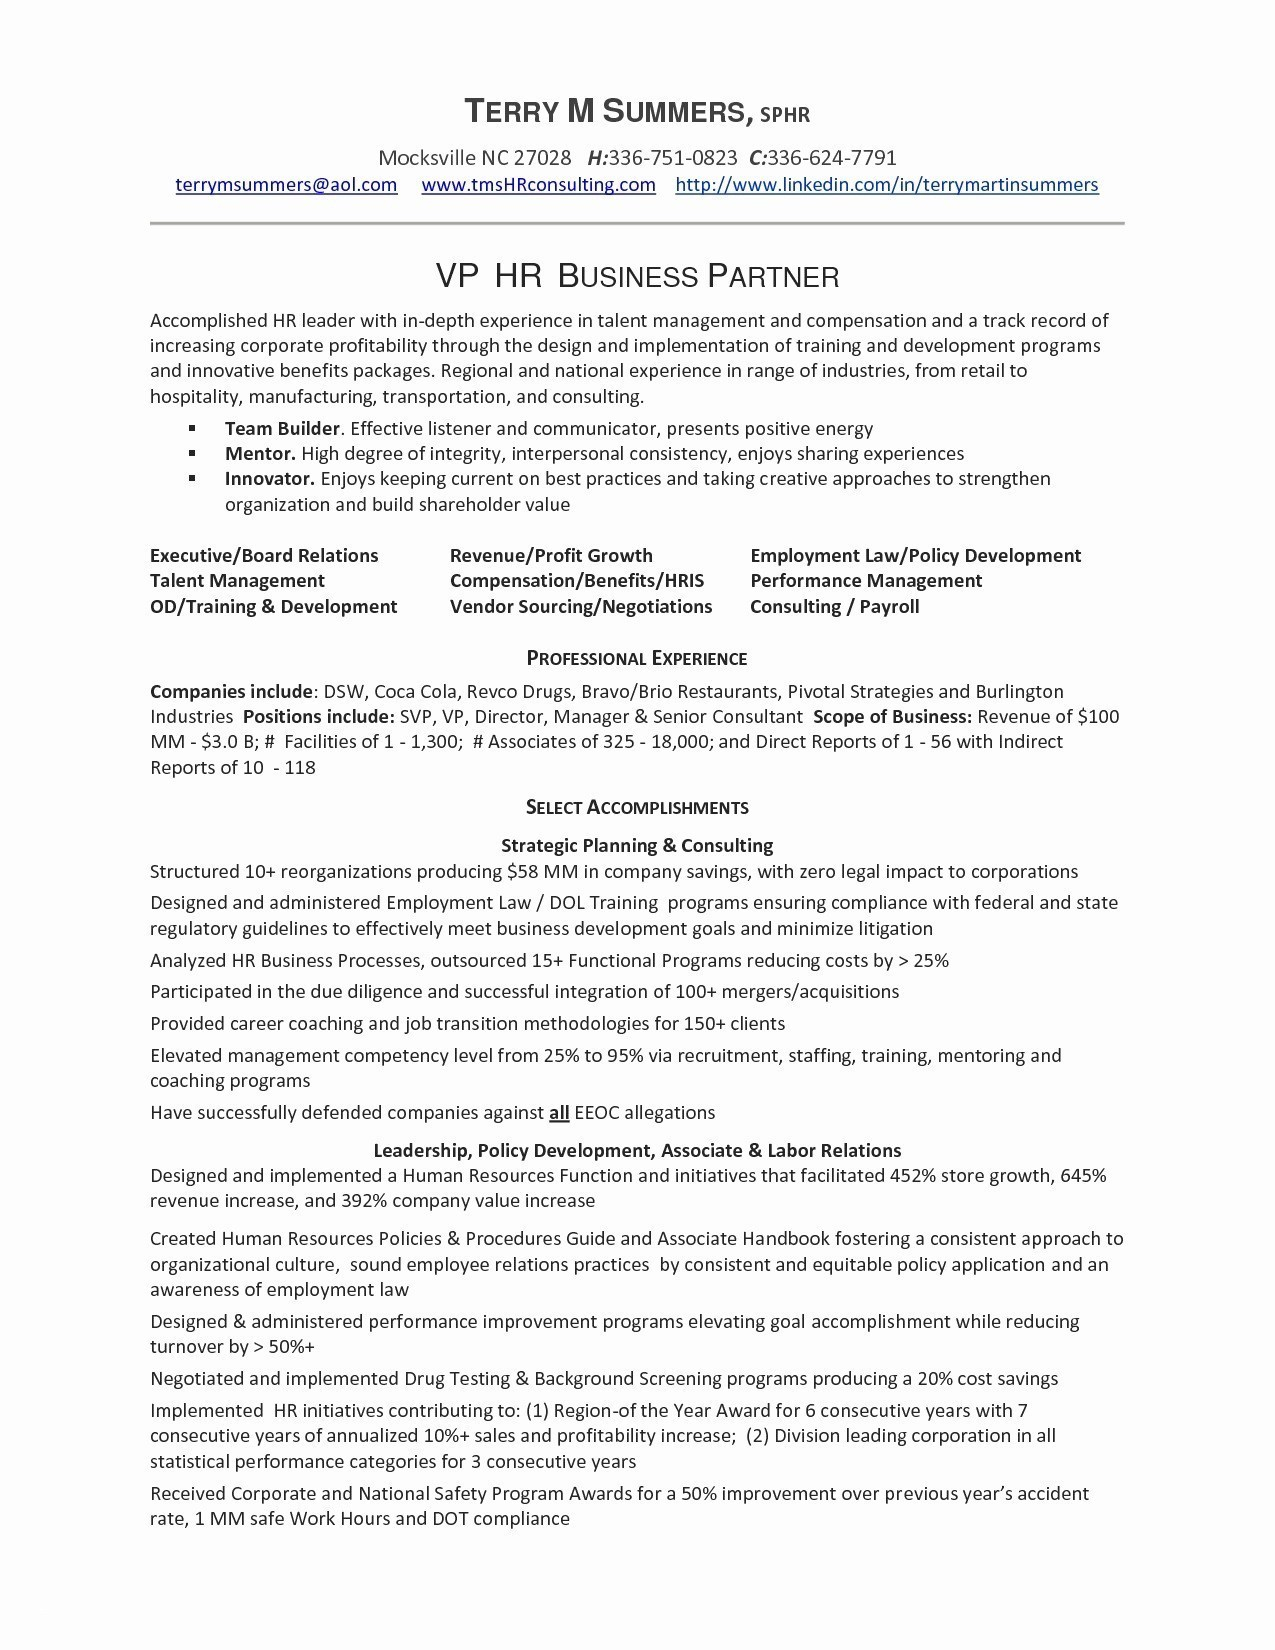 Resume Cheat Sheets - Resume Cheat Sheet Best Resume Cheat Sheet Druminventions Best